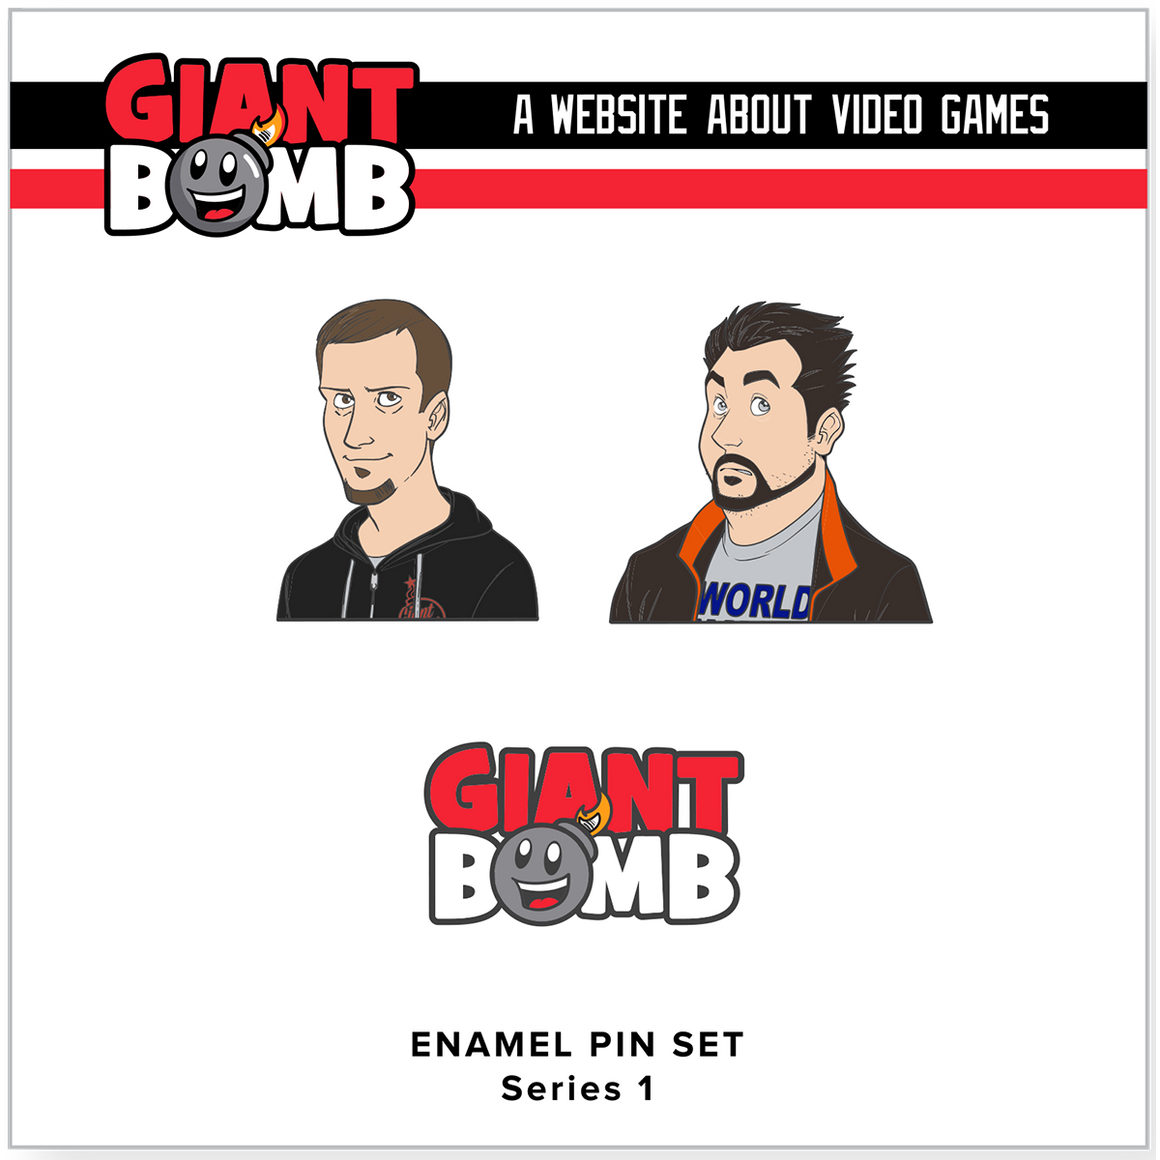 Enamel Pin Set - Series 1